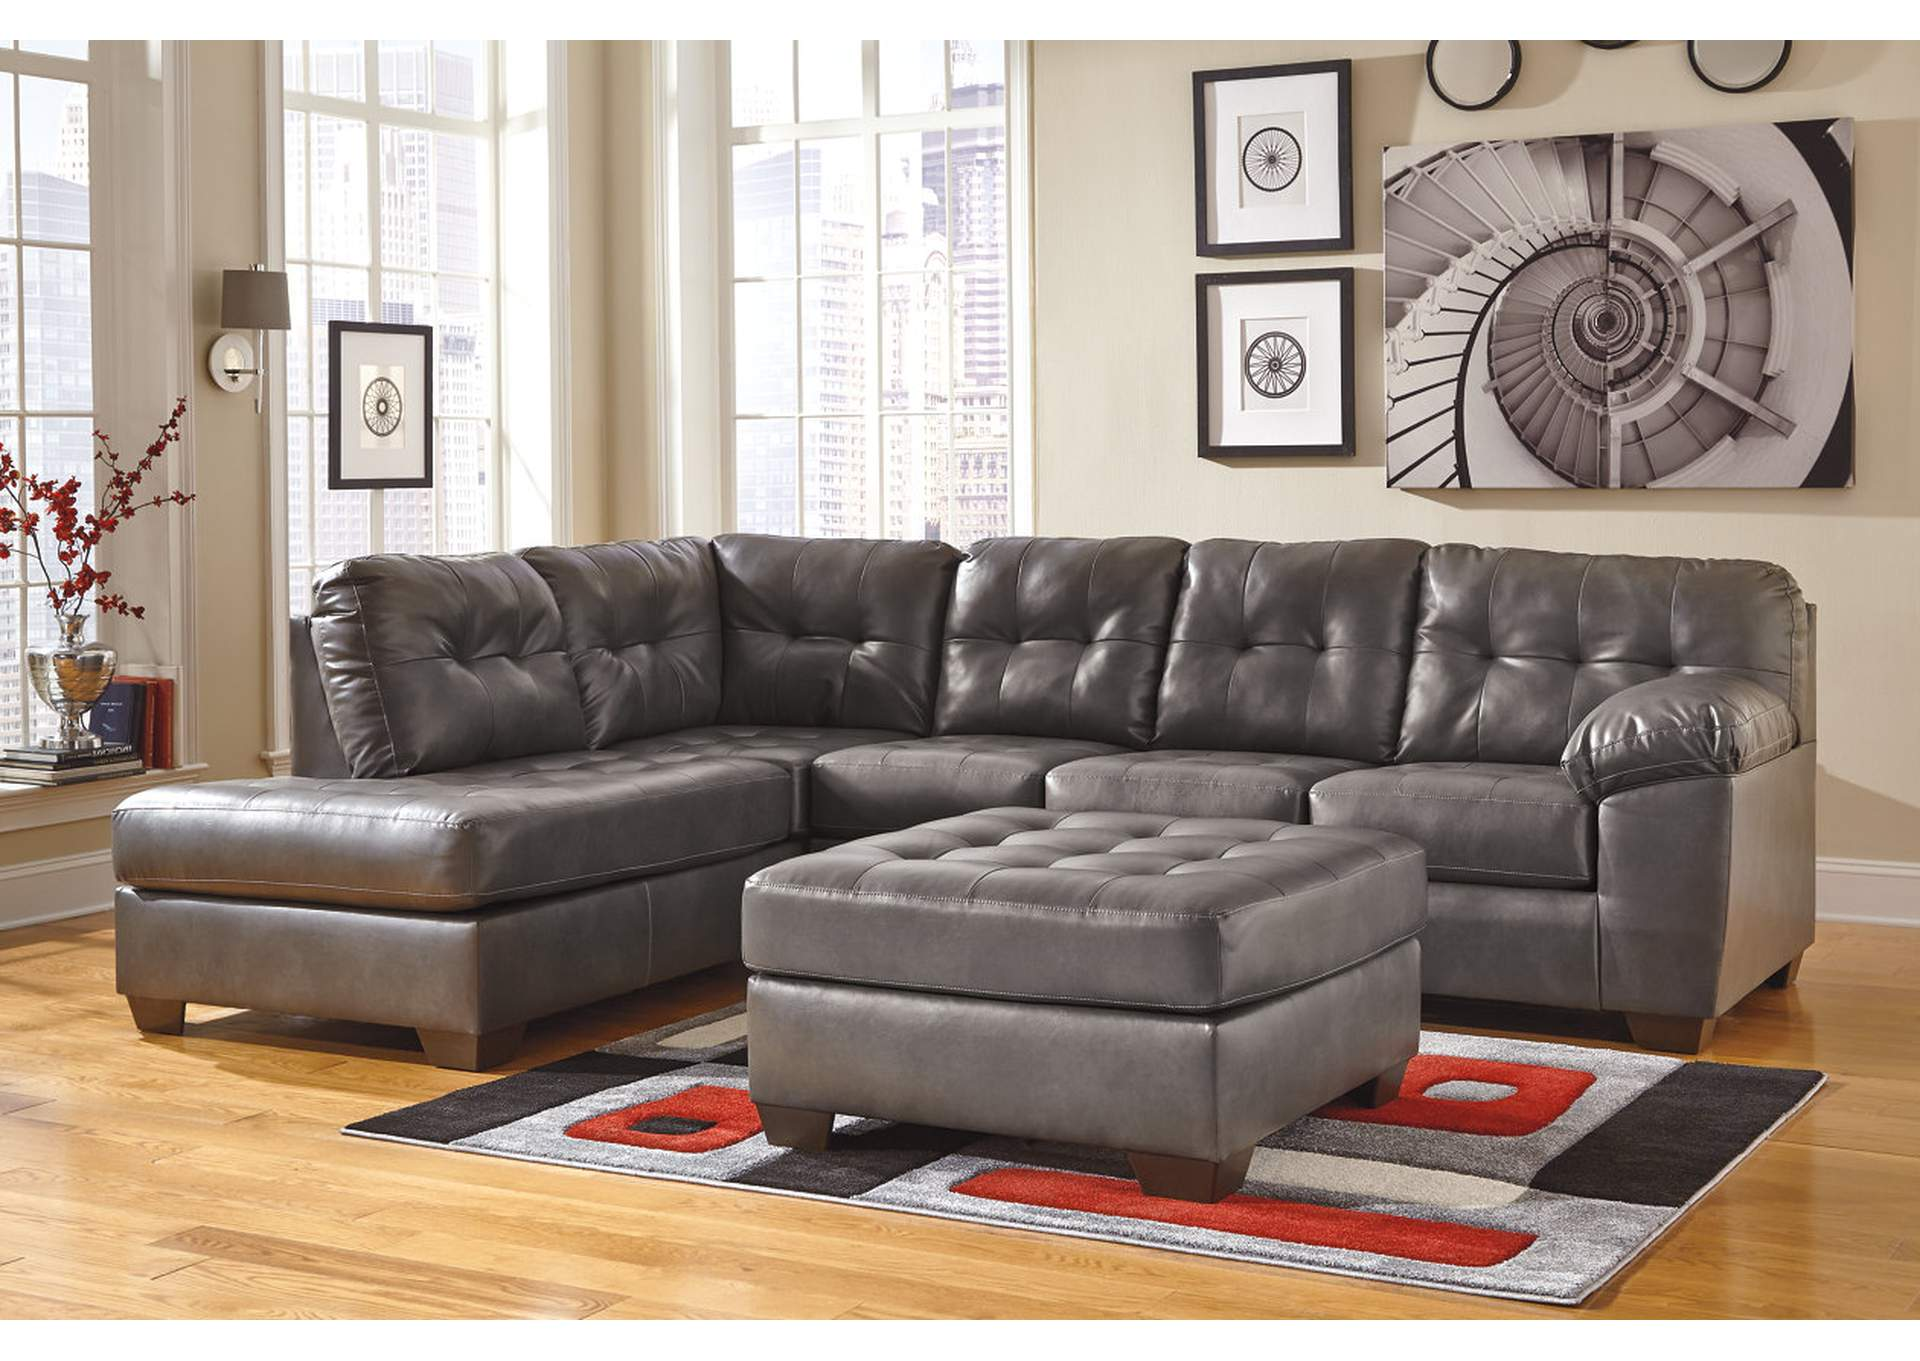 Alliston DuraBlend Gray Left Arm Facing Chaise End Sectional & Oversized Accent Ottoman,Signature Design By Ashley